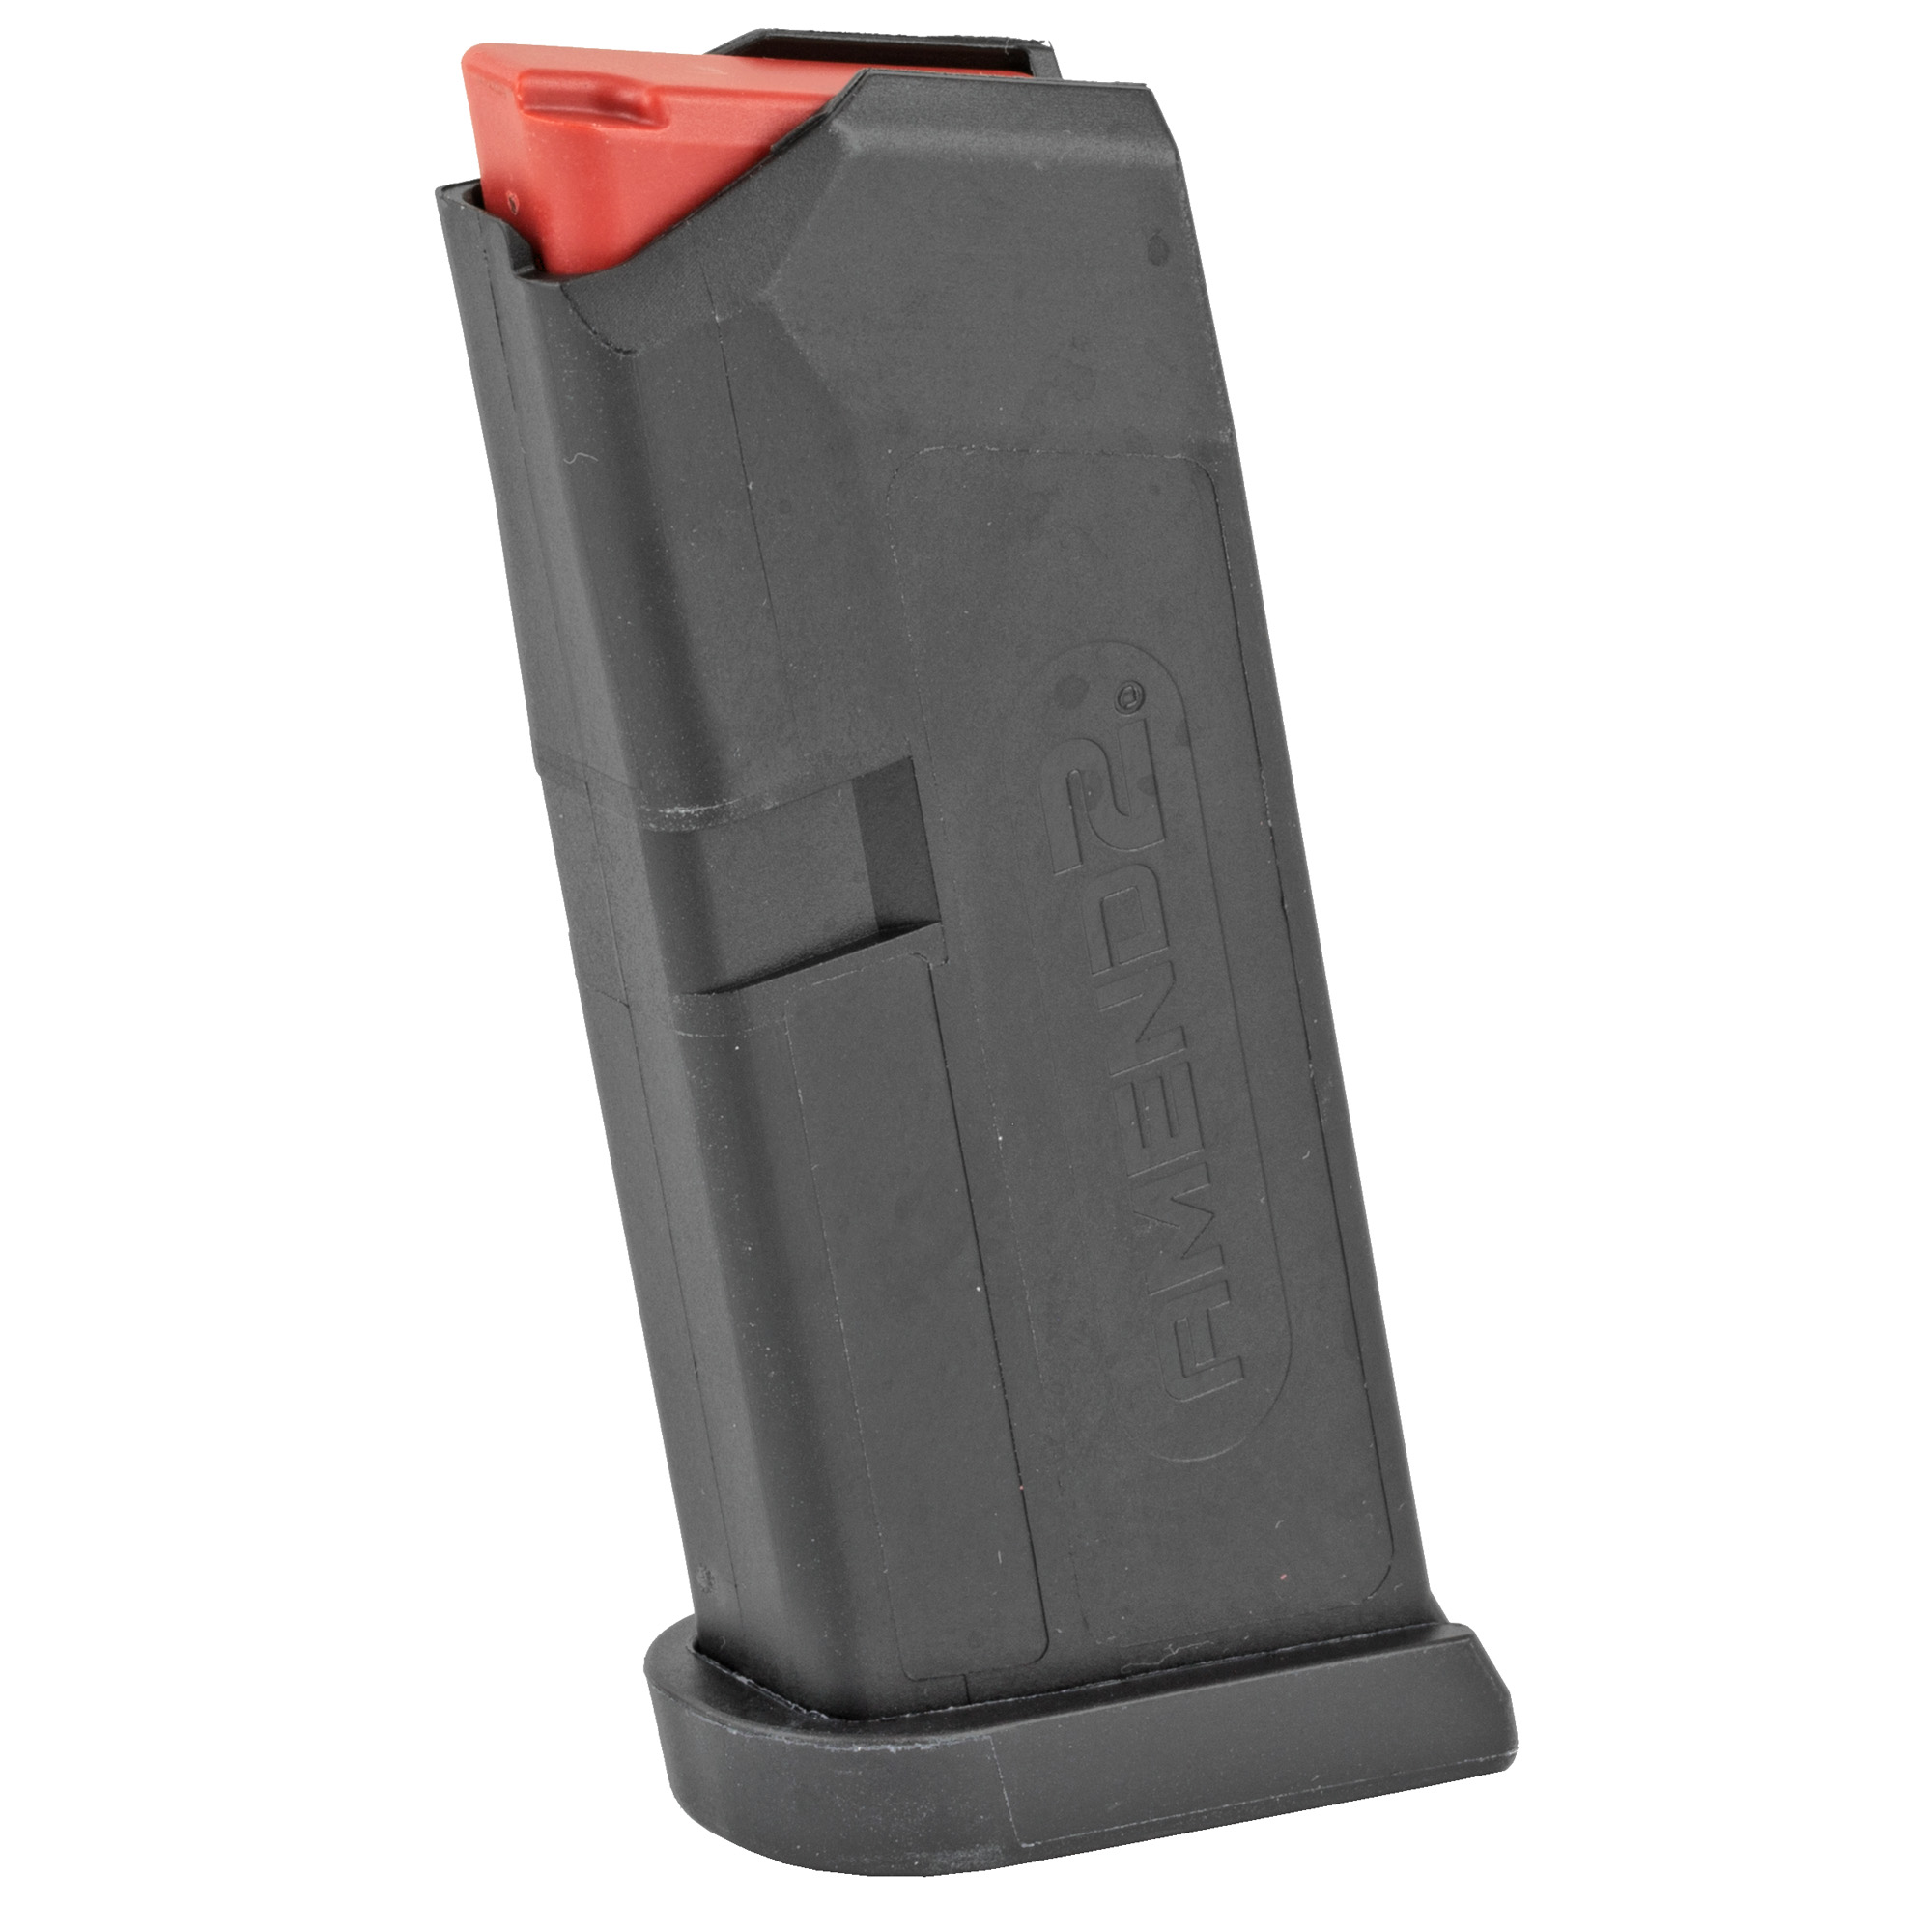 """This Amend2 6-round magazine is designed for use in the GLOCK 43 and is a sturdy"""" reliable 9mm magazine made of advanced polymer material. It is a light"""" durable and excellent alternative to the standard GLOCK(R) OEM magazine."""